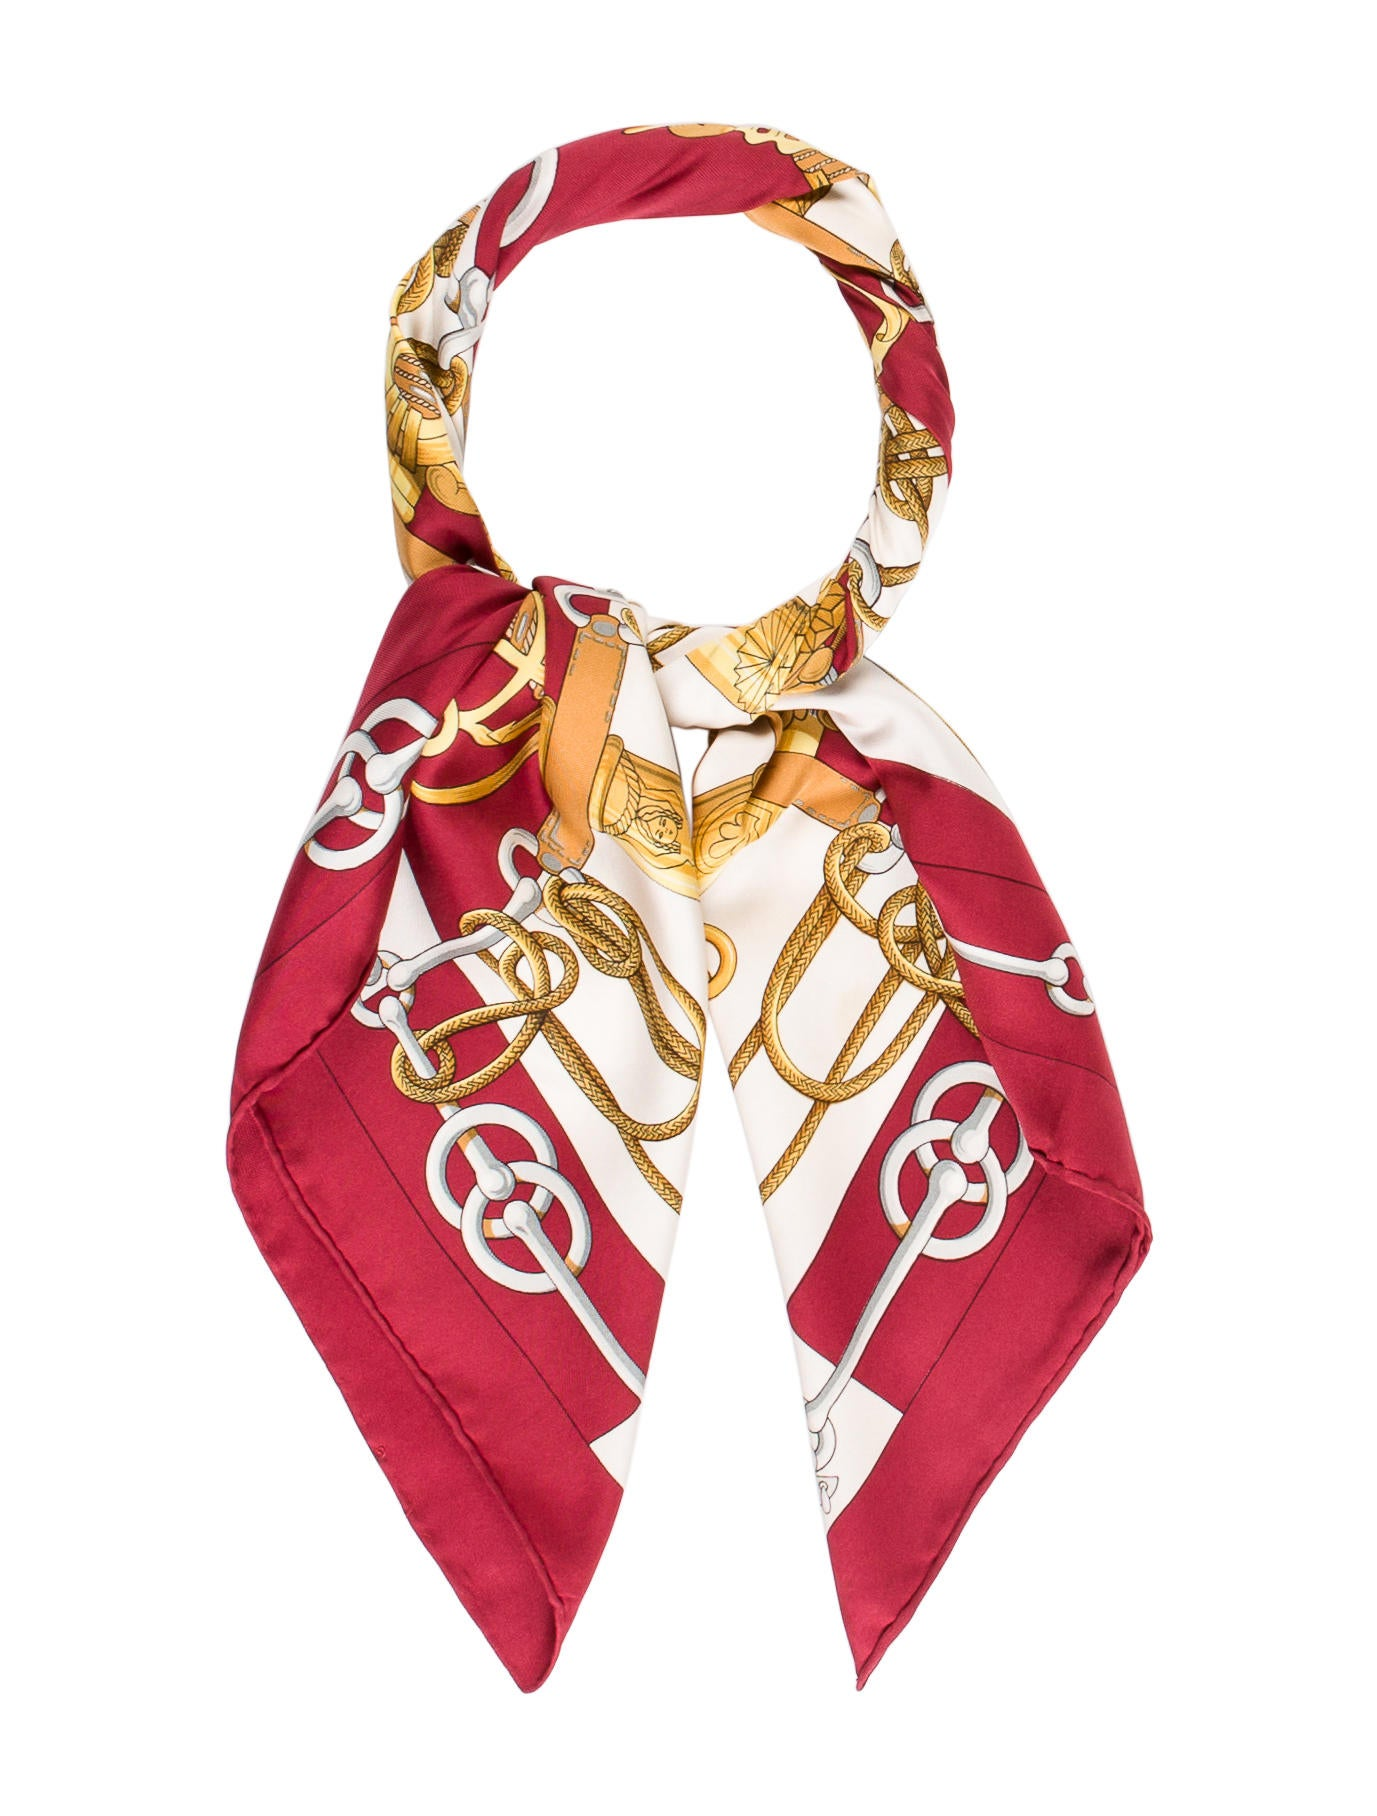 herm 232 s cliquetis scarf accessories her89590 the realreal